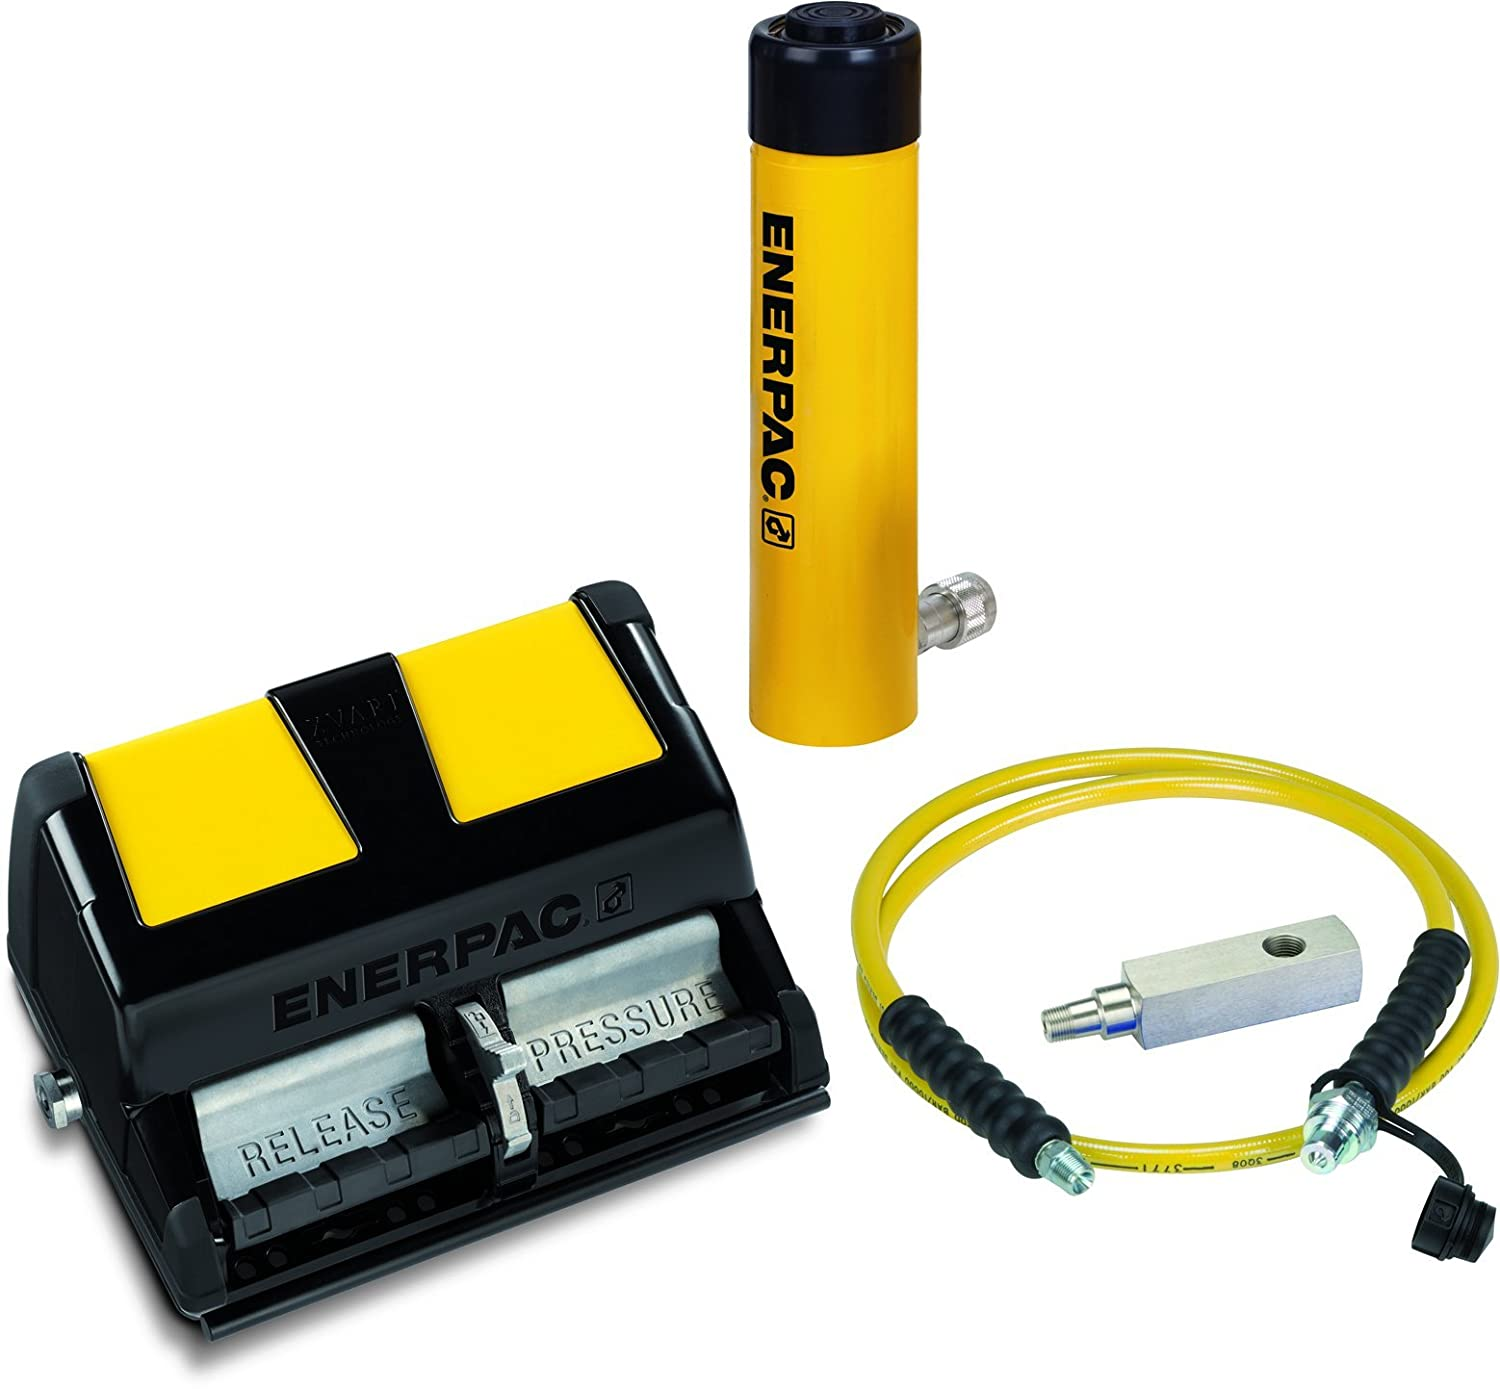 Enerpac SCH-603XA Cylinder and Pump RCH-603 Sale Special Price with Ranking TOP12 Set an